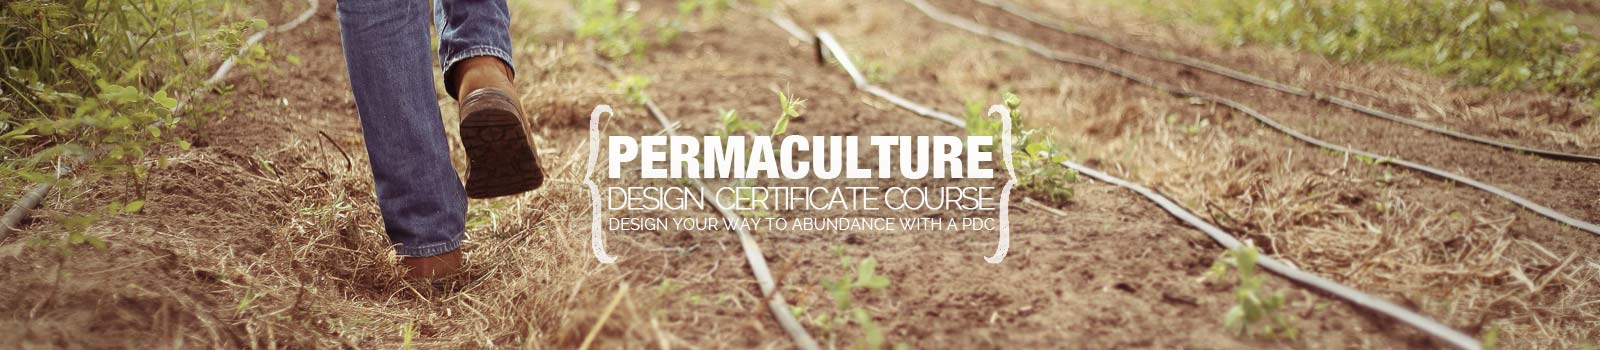 Permaculture Research Institute headline.